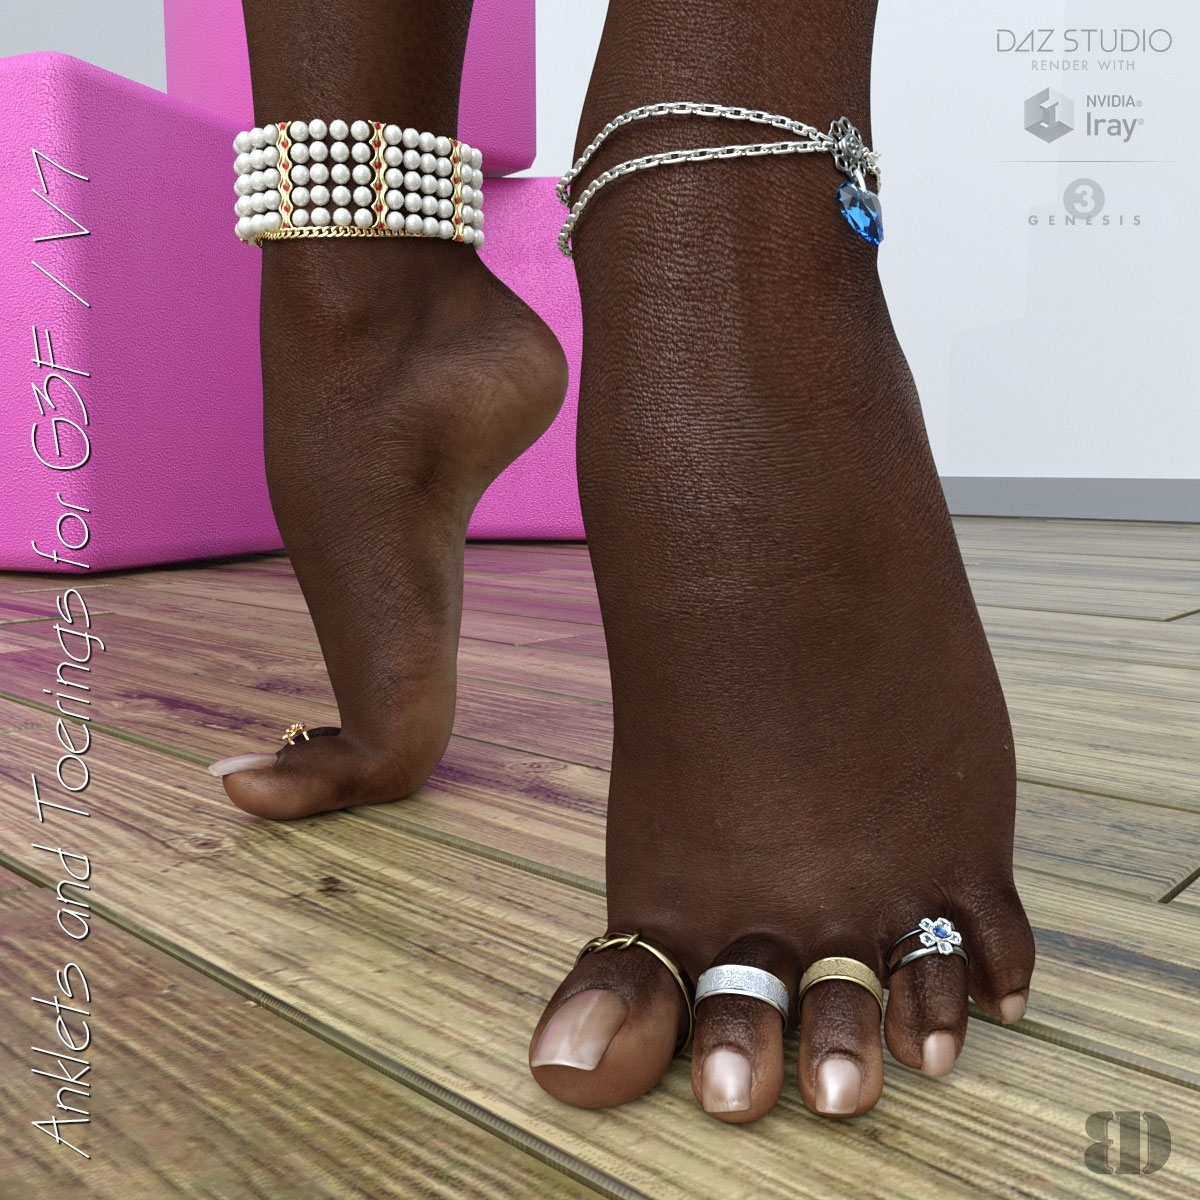 Anklets And Toerings For G3F/v7 3D Figure Assets Bigdreams Regarding Newest Anklets With Toe Rings (View 16 of 16)